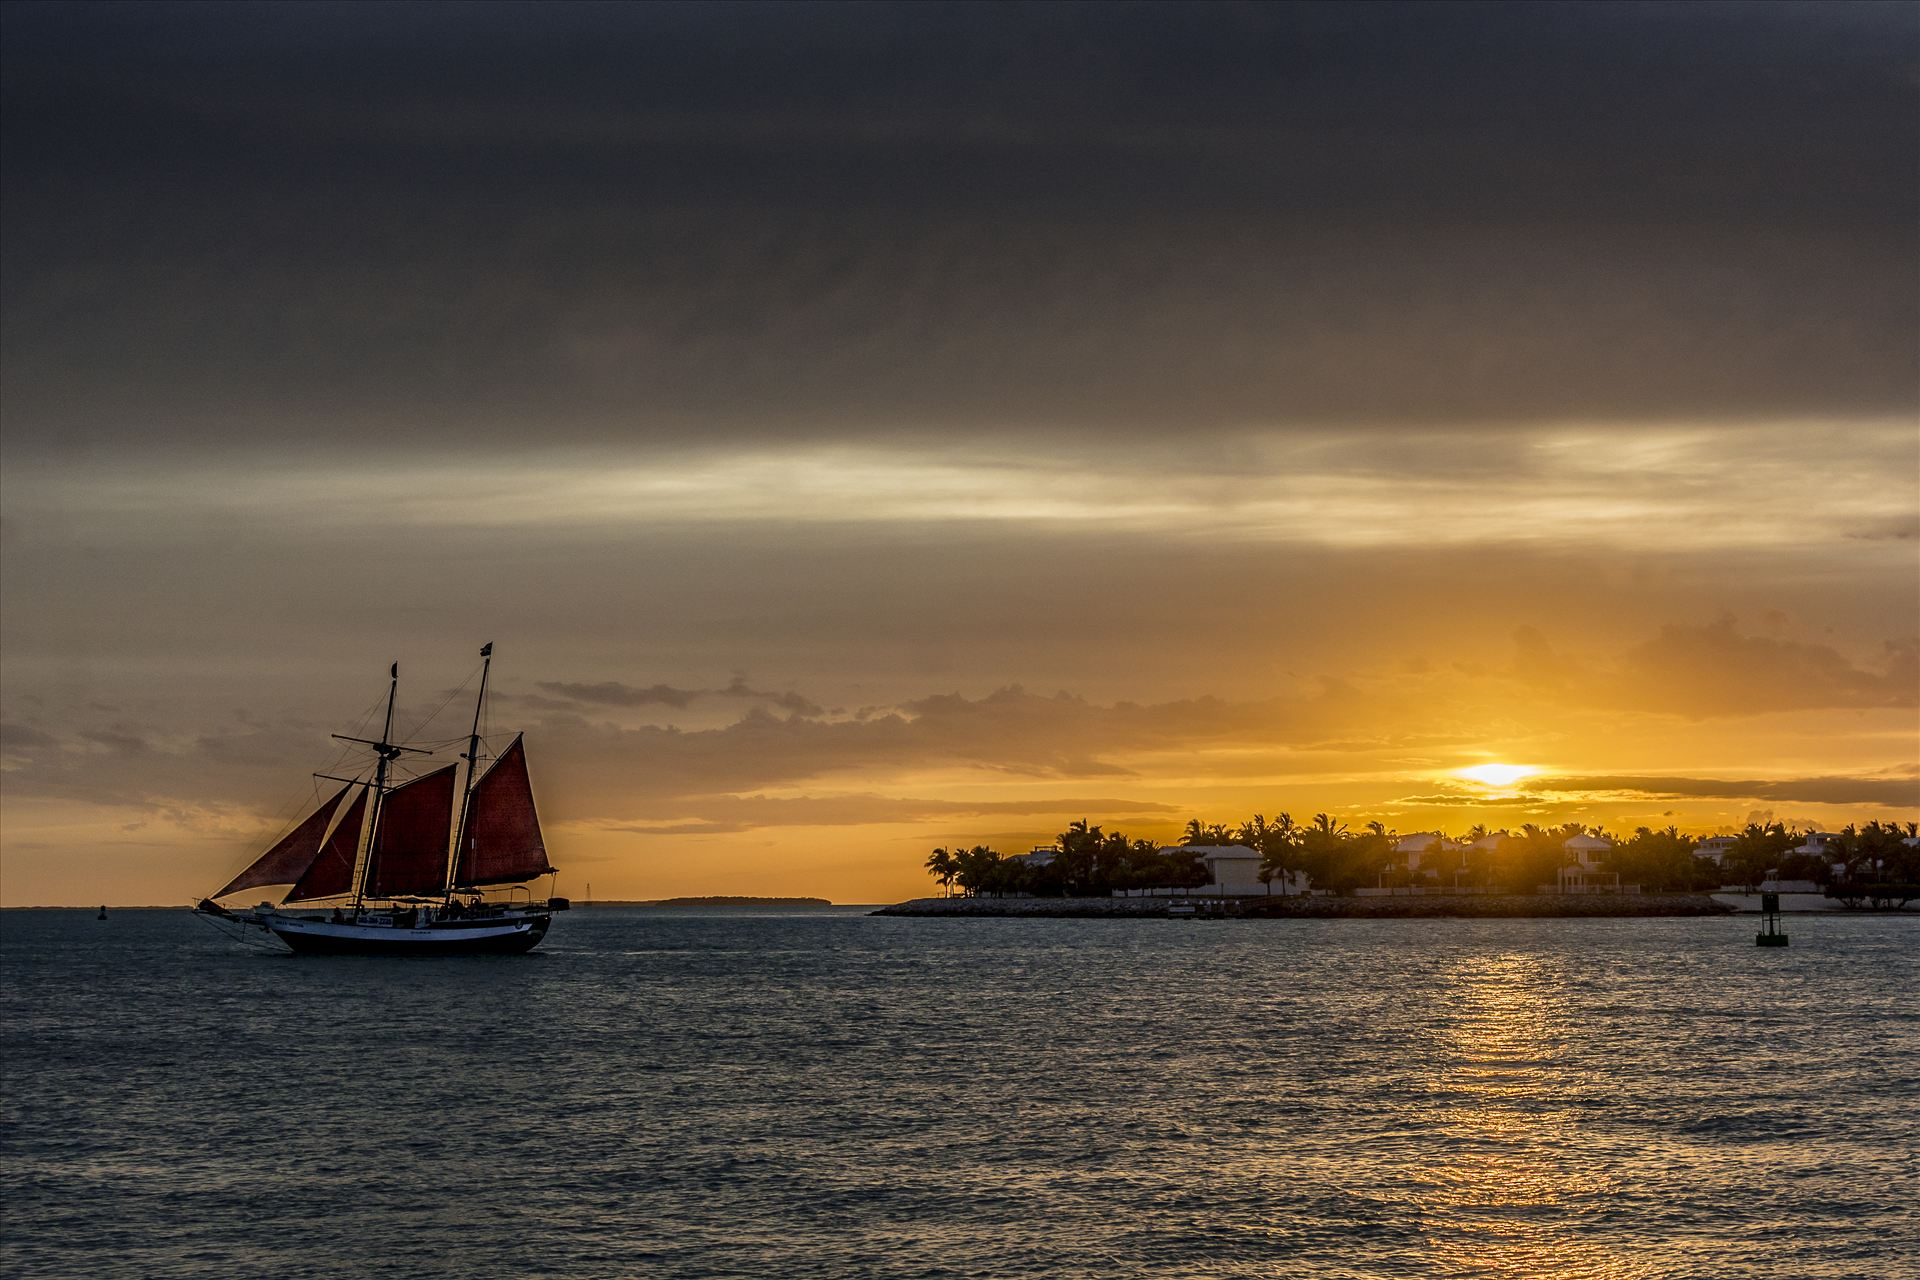 Galleon Sunset.jpg - Key West sunset celebration with tall ships in the distance. by Sarah Williams